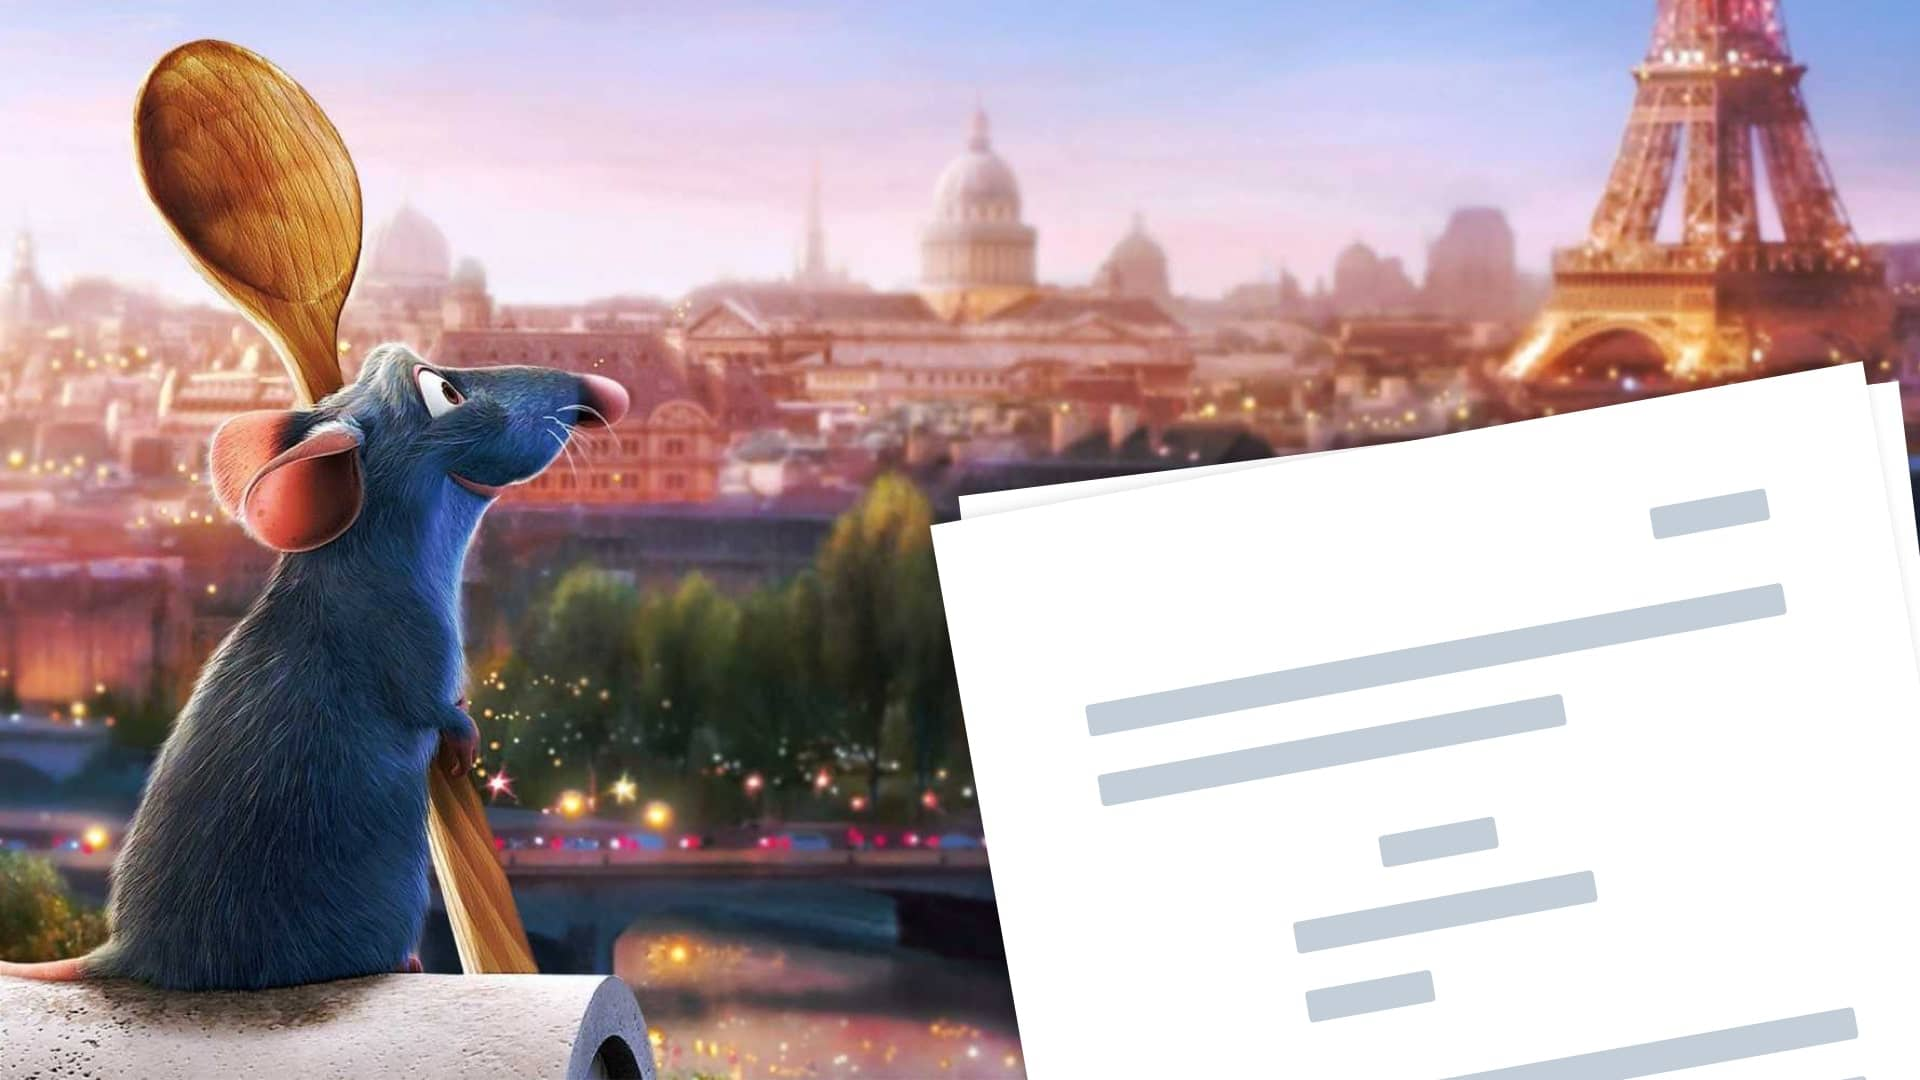 Ratatouille Script Pdf Download Plot Characters And Ending